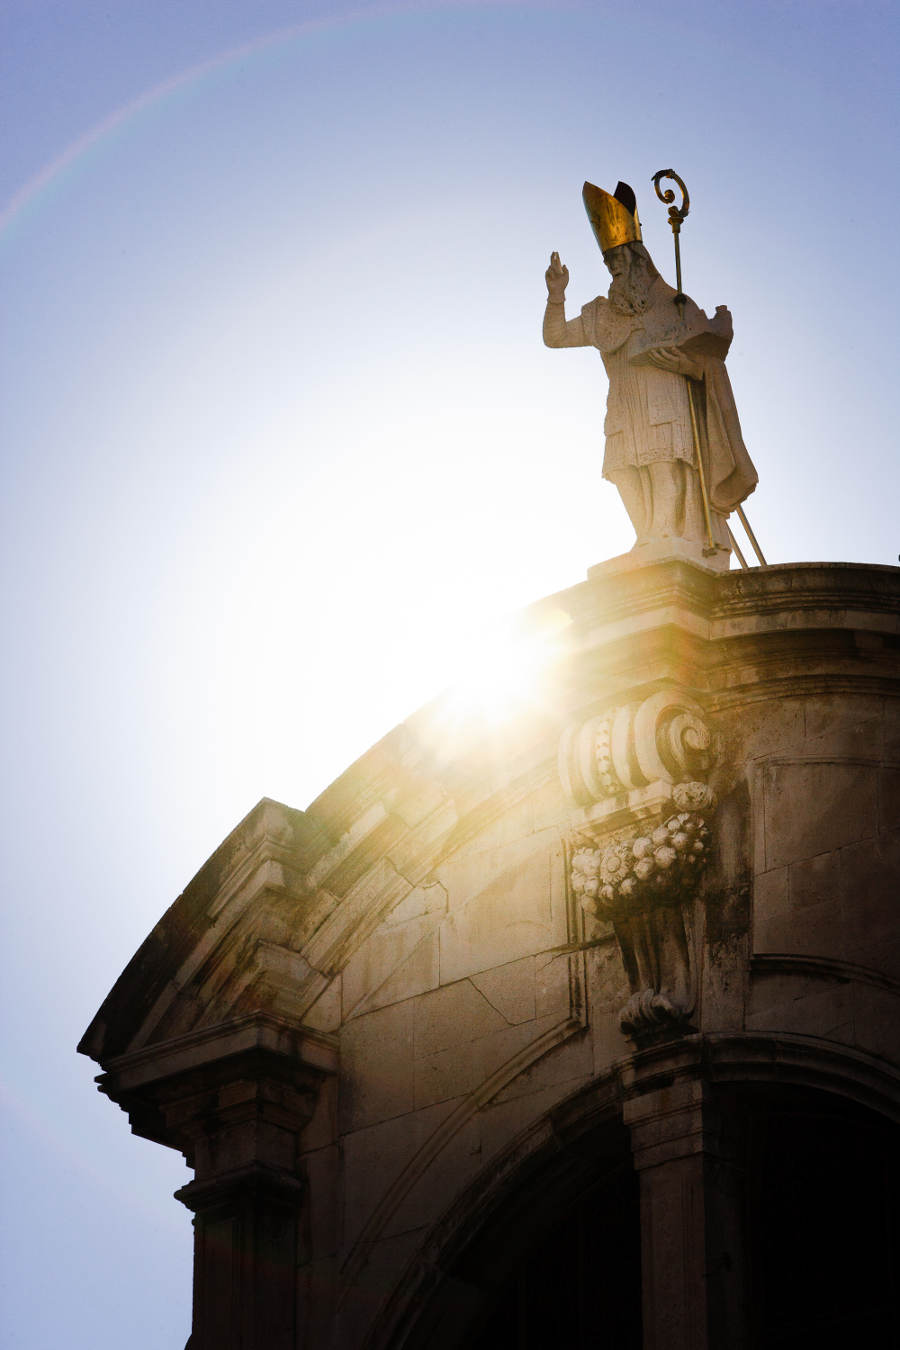 Discover dubrovnik old town guided walking tour - Discover Dubrovnik Old Town Guided Walking Tour 56